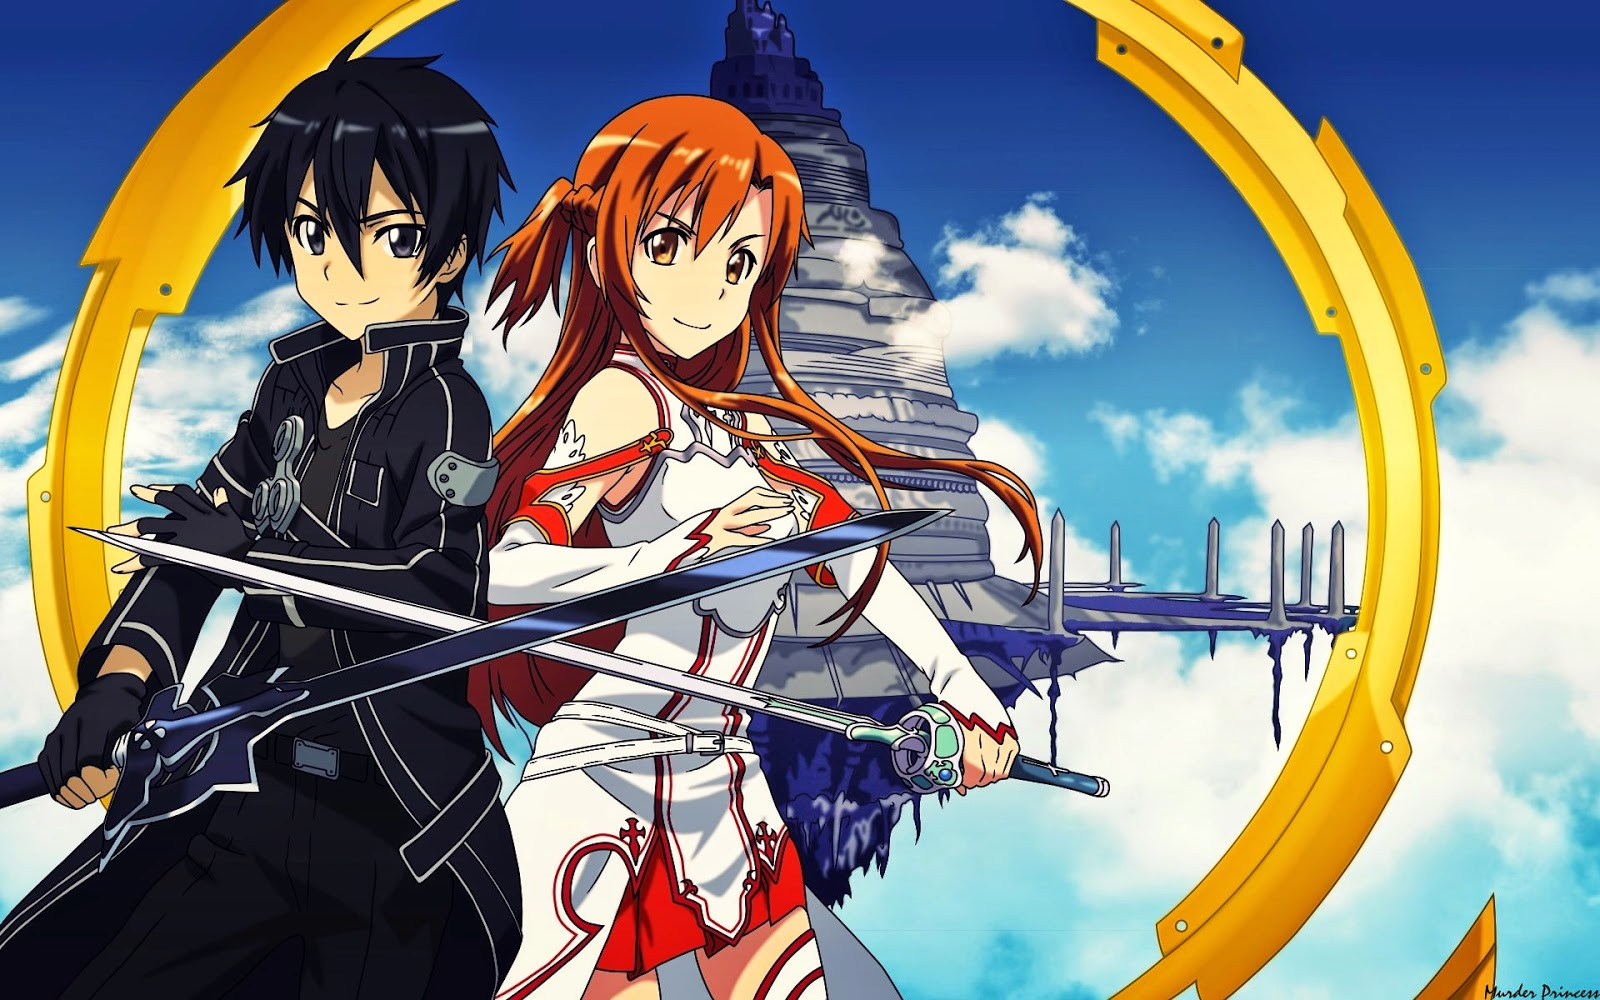 adegan terbaik di anime sword art online